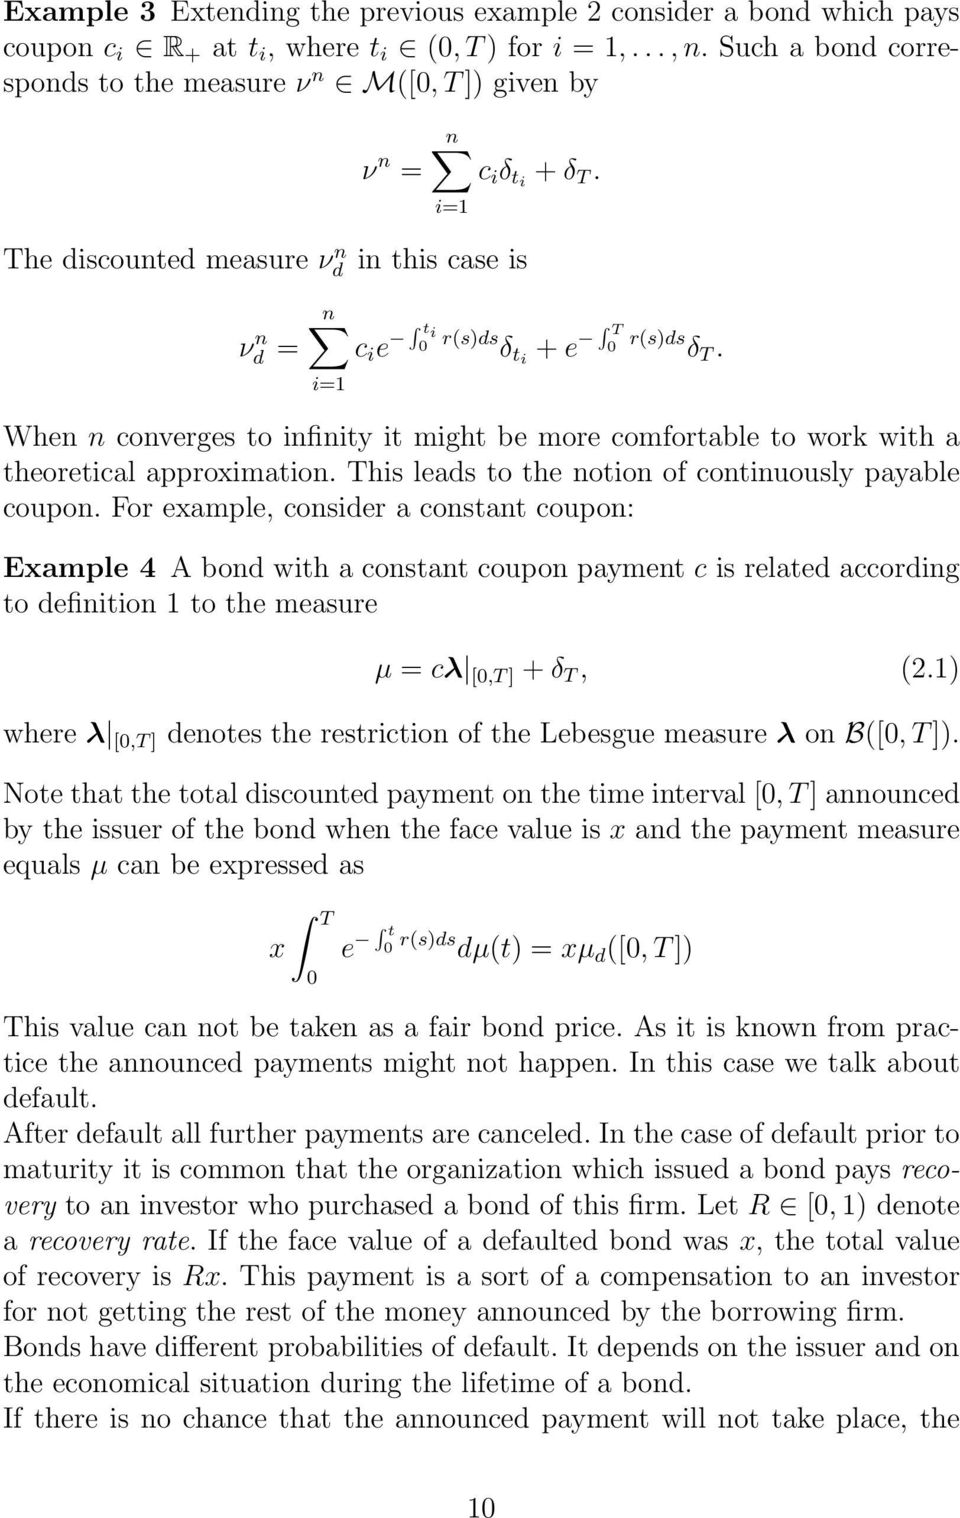 When n converges to infinity it might be more comfortable to work with a theoretical approximation. This leads to the notion of continuously payable coupon.